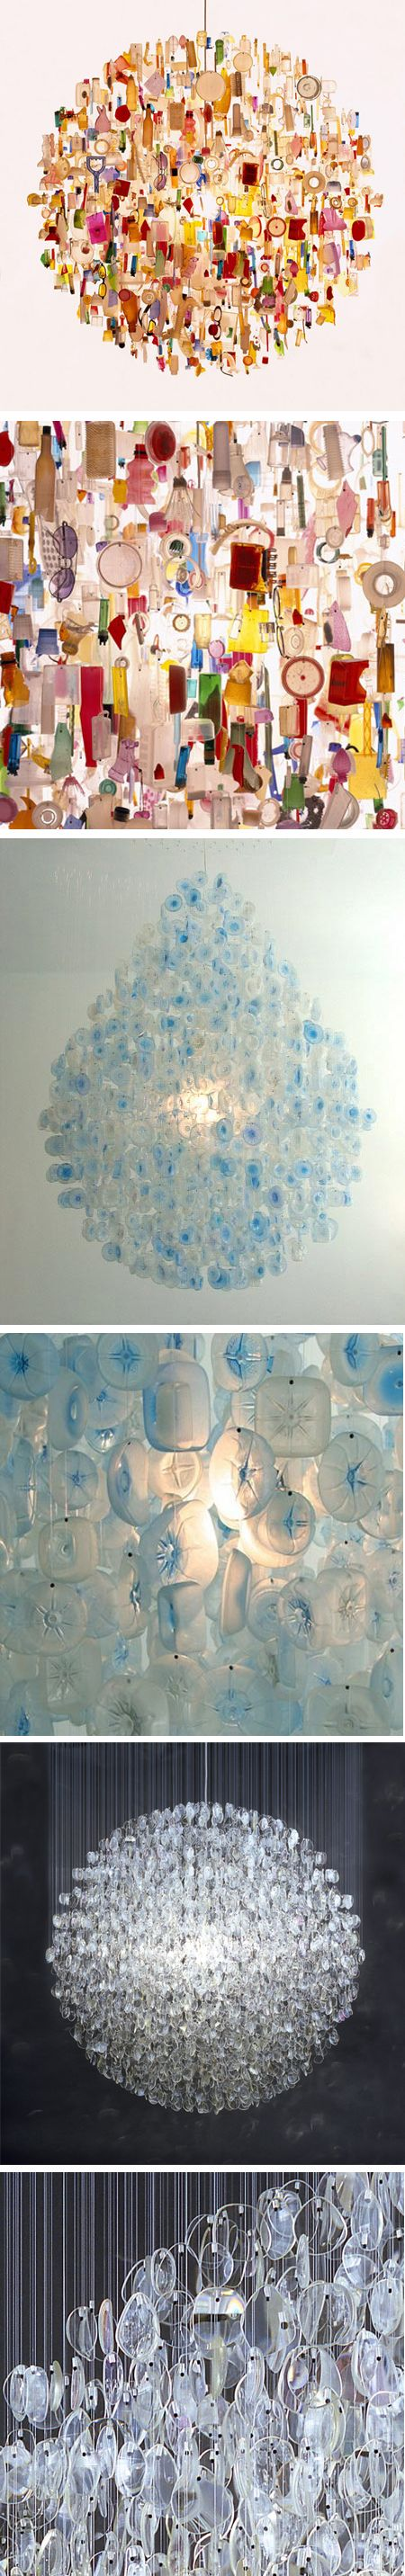 """stuart_haygarth - So beautiful, such a clever way of """"up-cycling"""" rubbish - love it!        So Cool!!"""